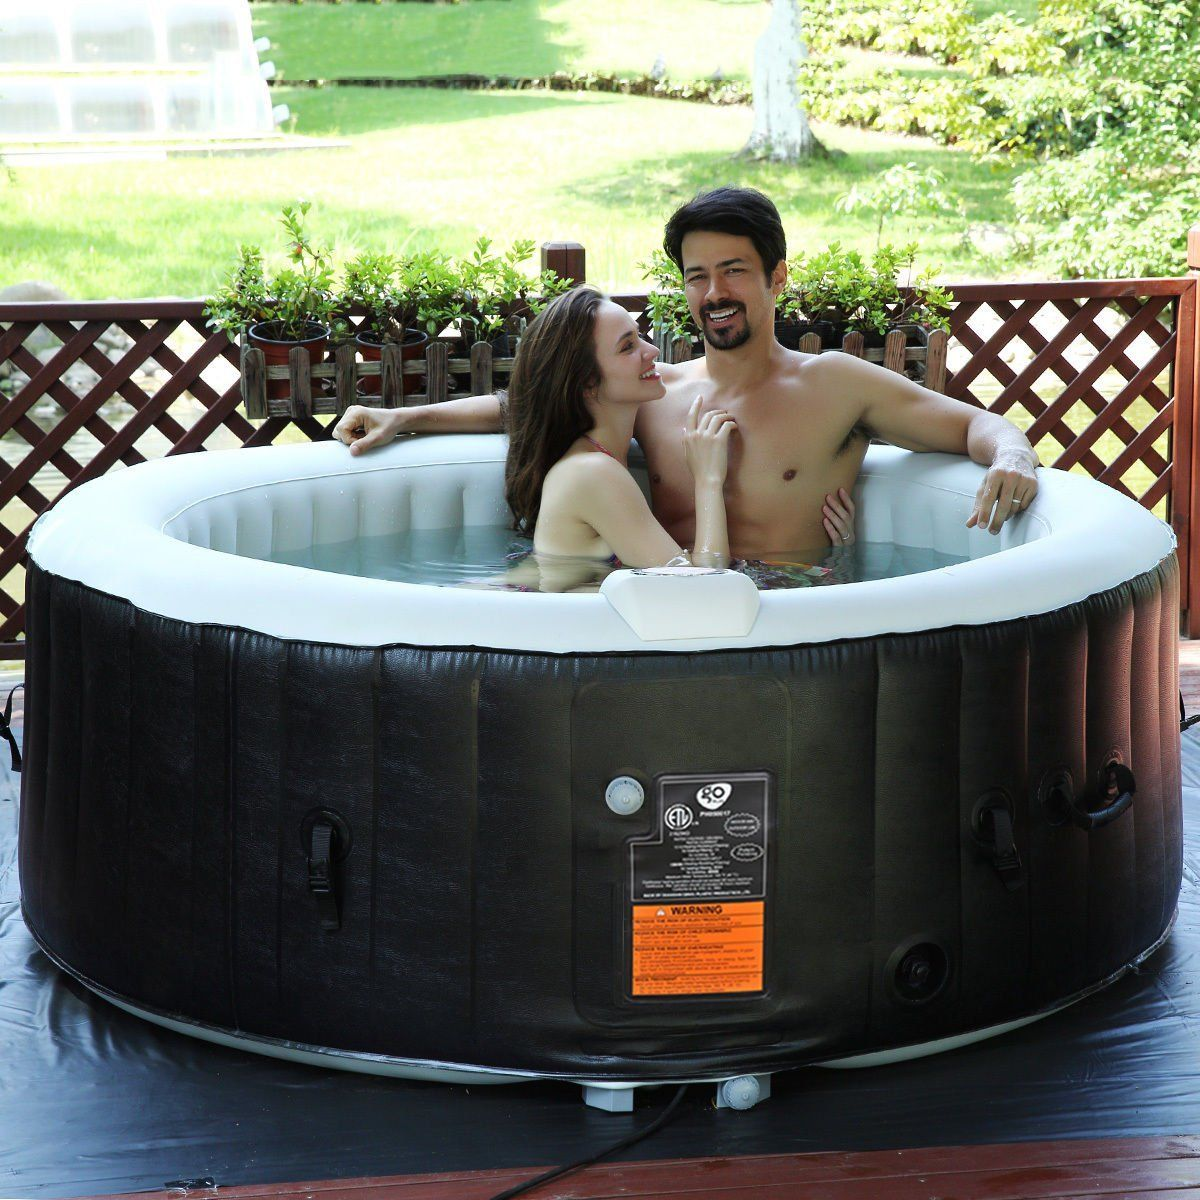 Goplus 4 Person Portable Inflatable Hot Tub For Outdoor Jets